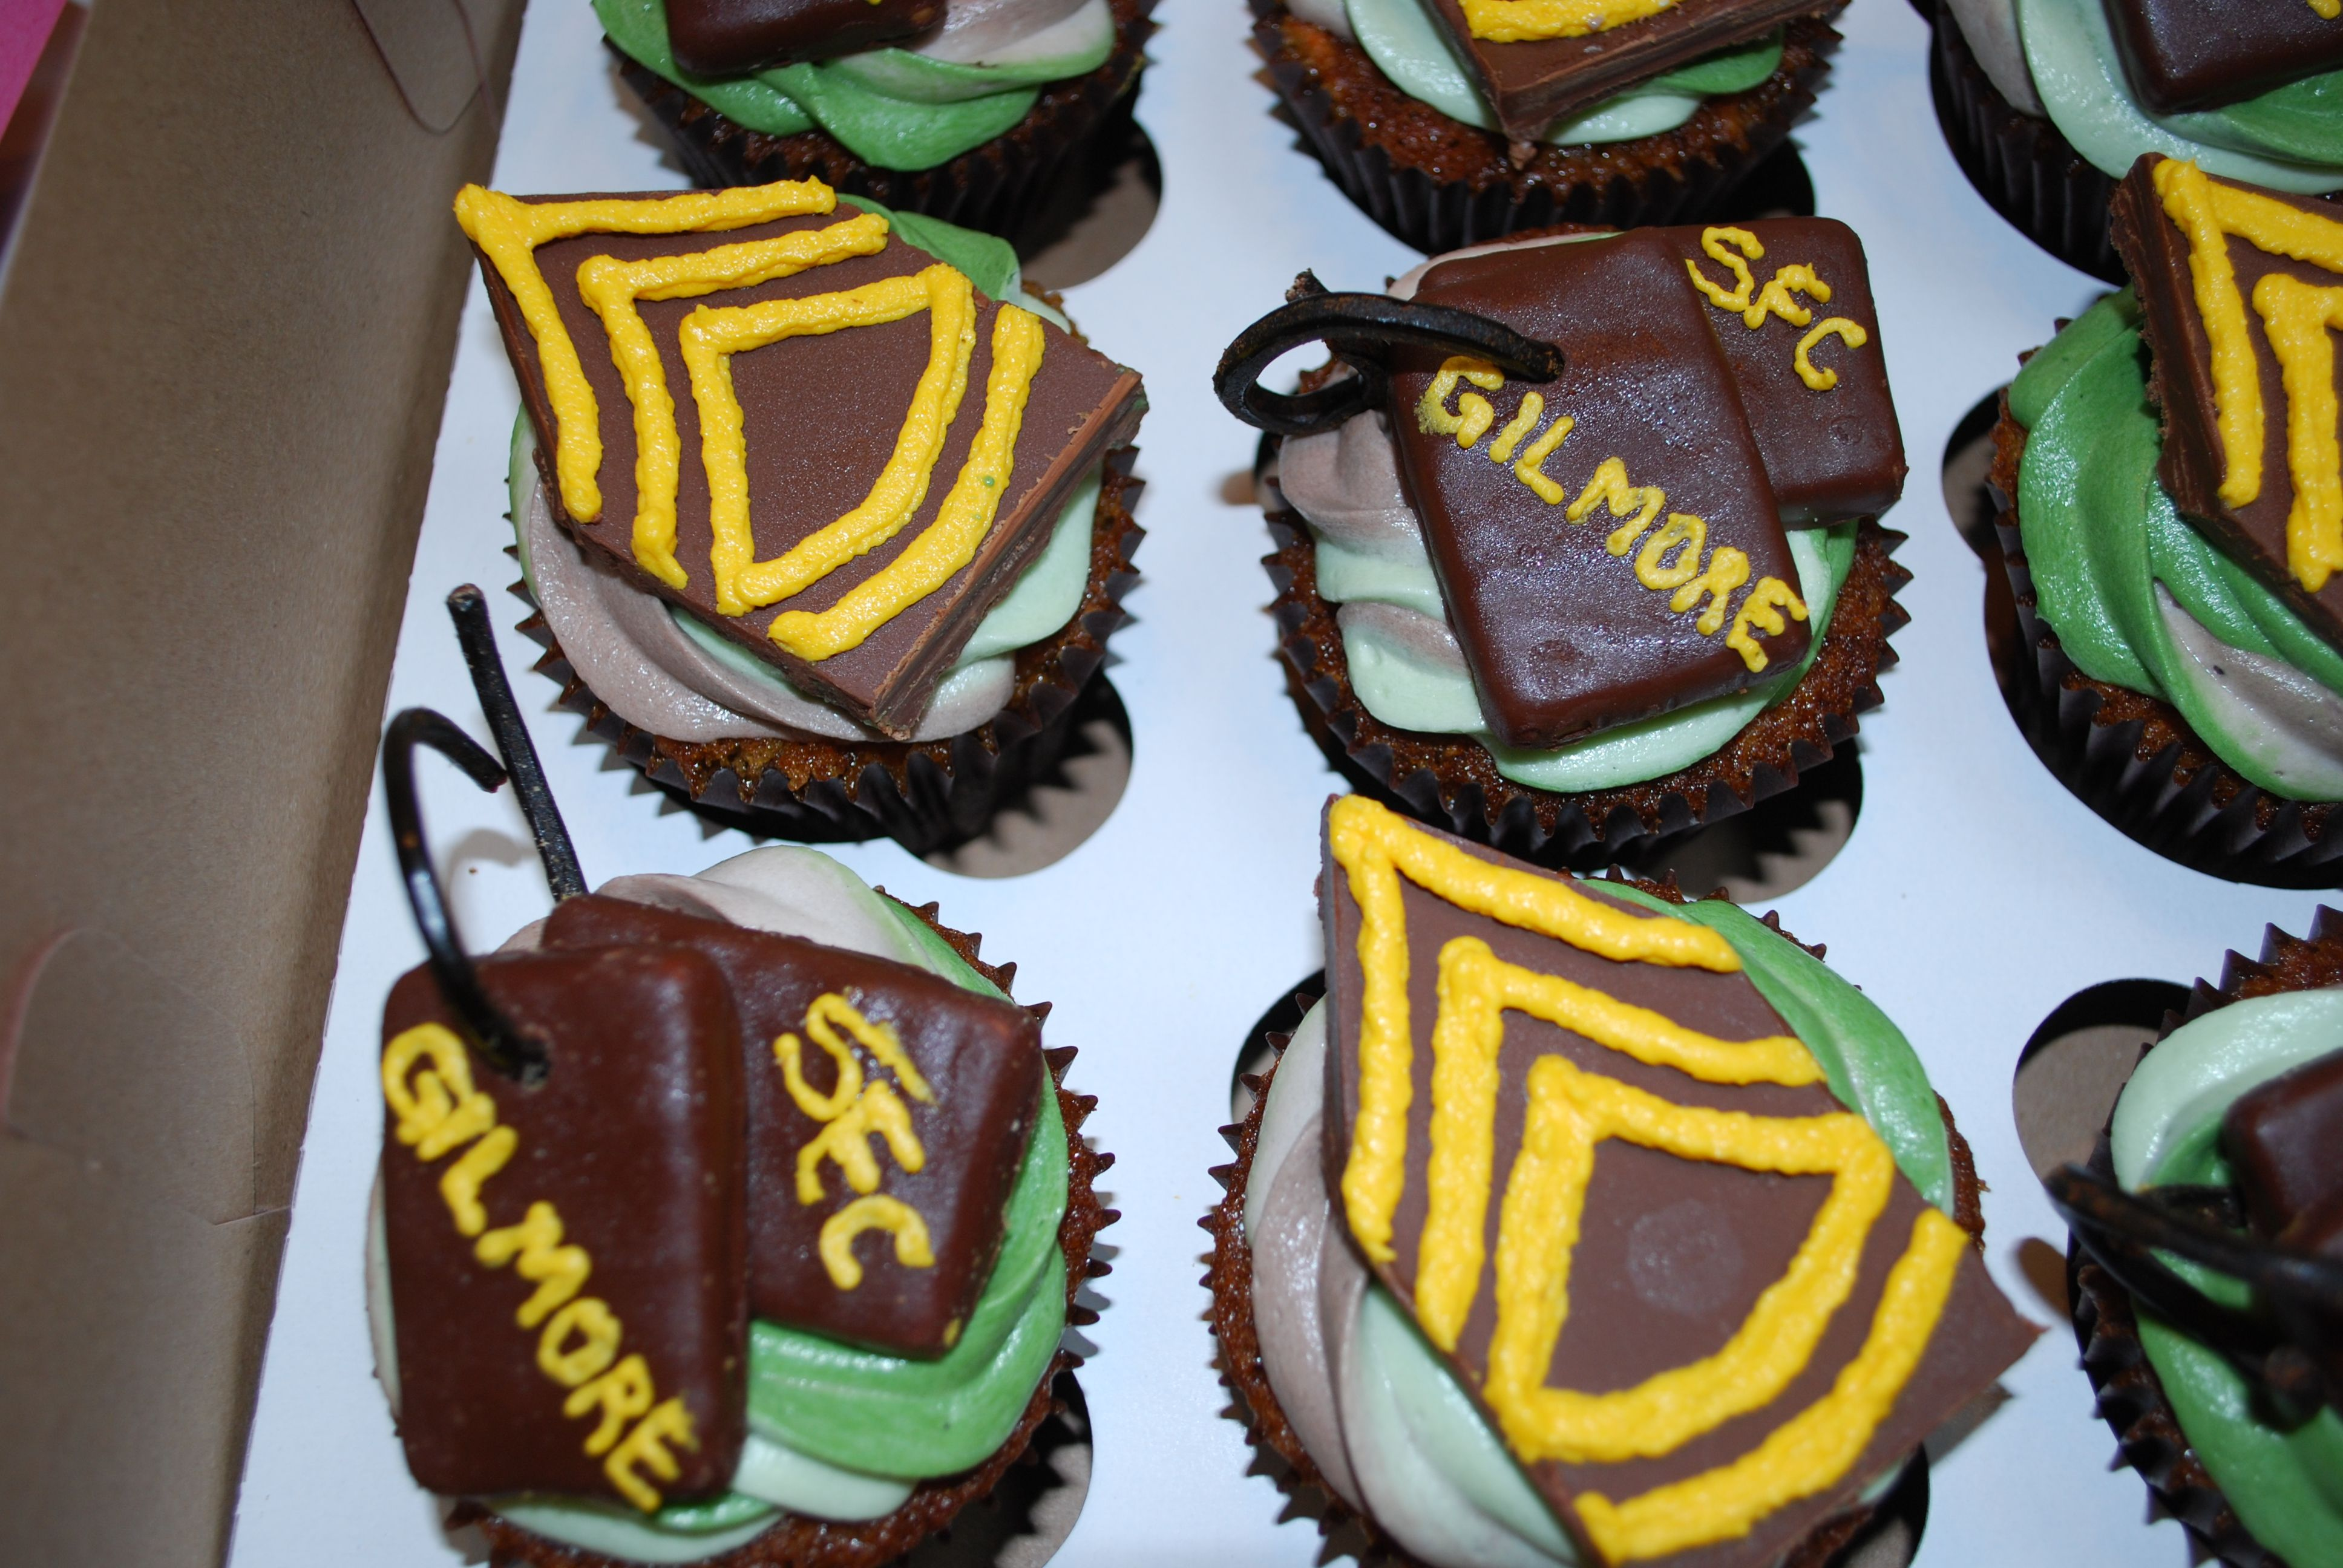 Army: Sgt. First Class Cupcakes. How amazing!